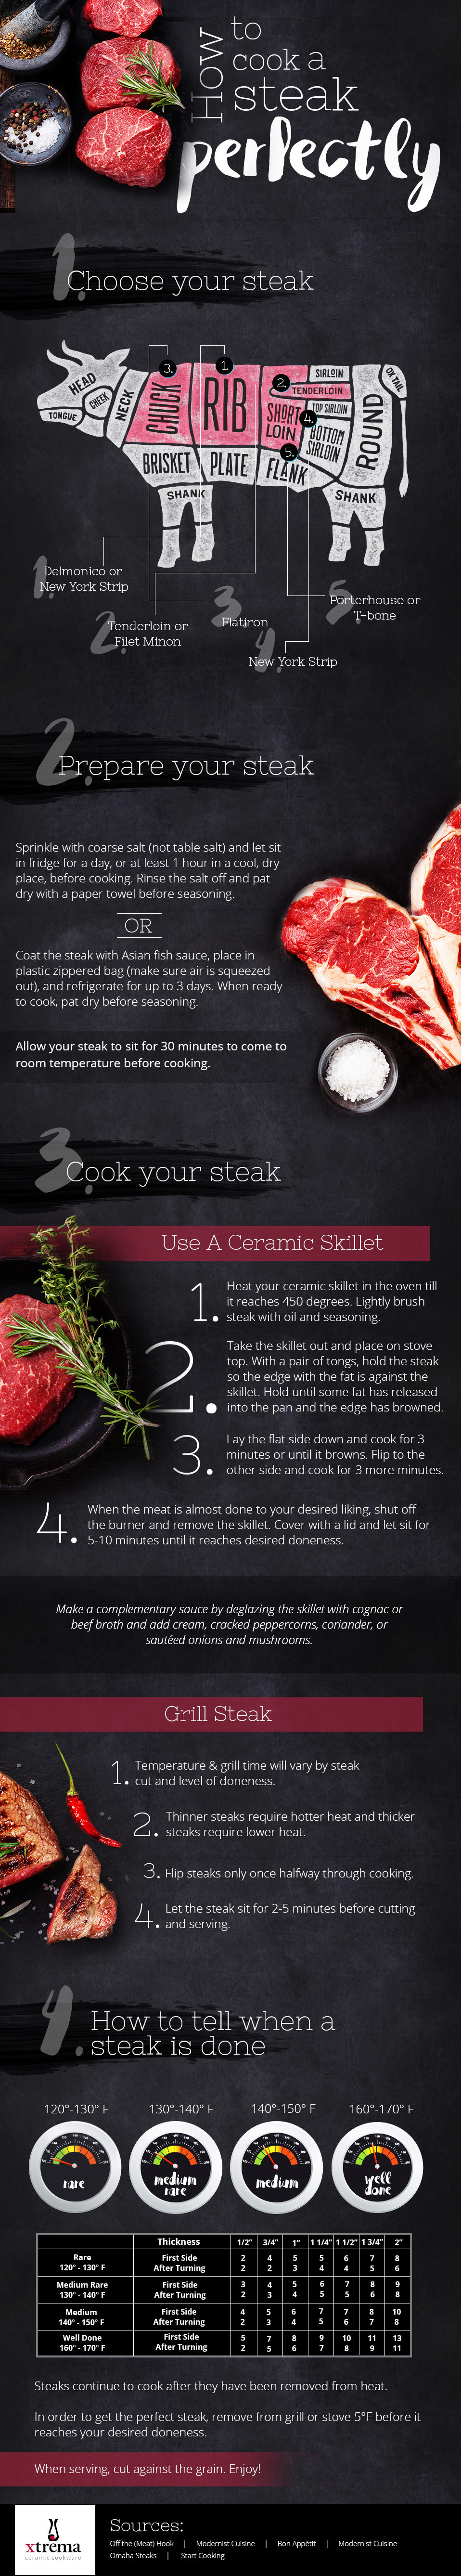 How to Cook Steak Perfectly